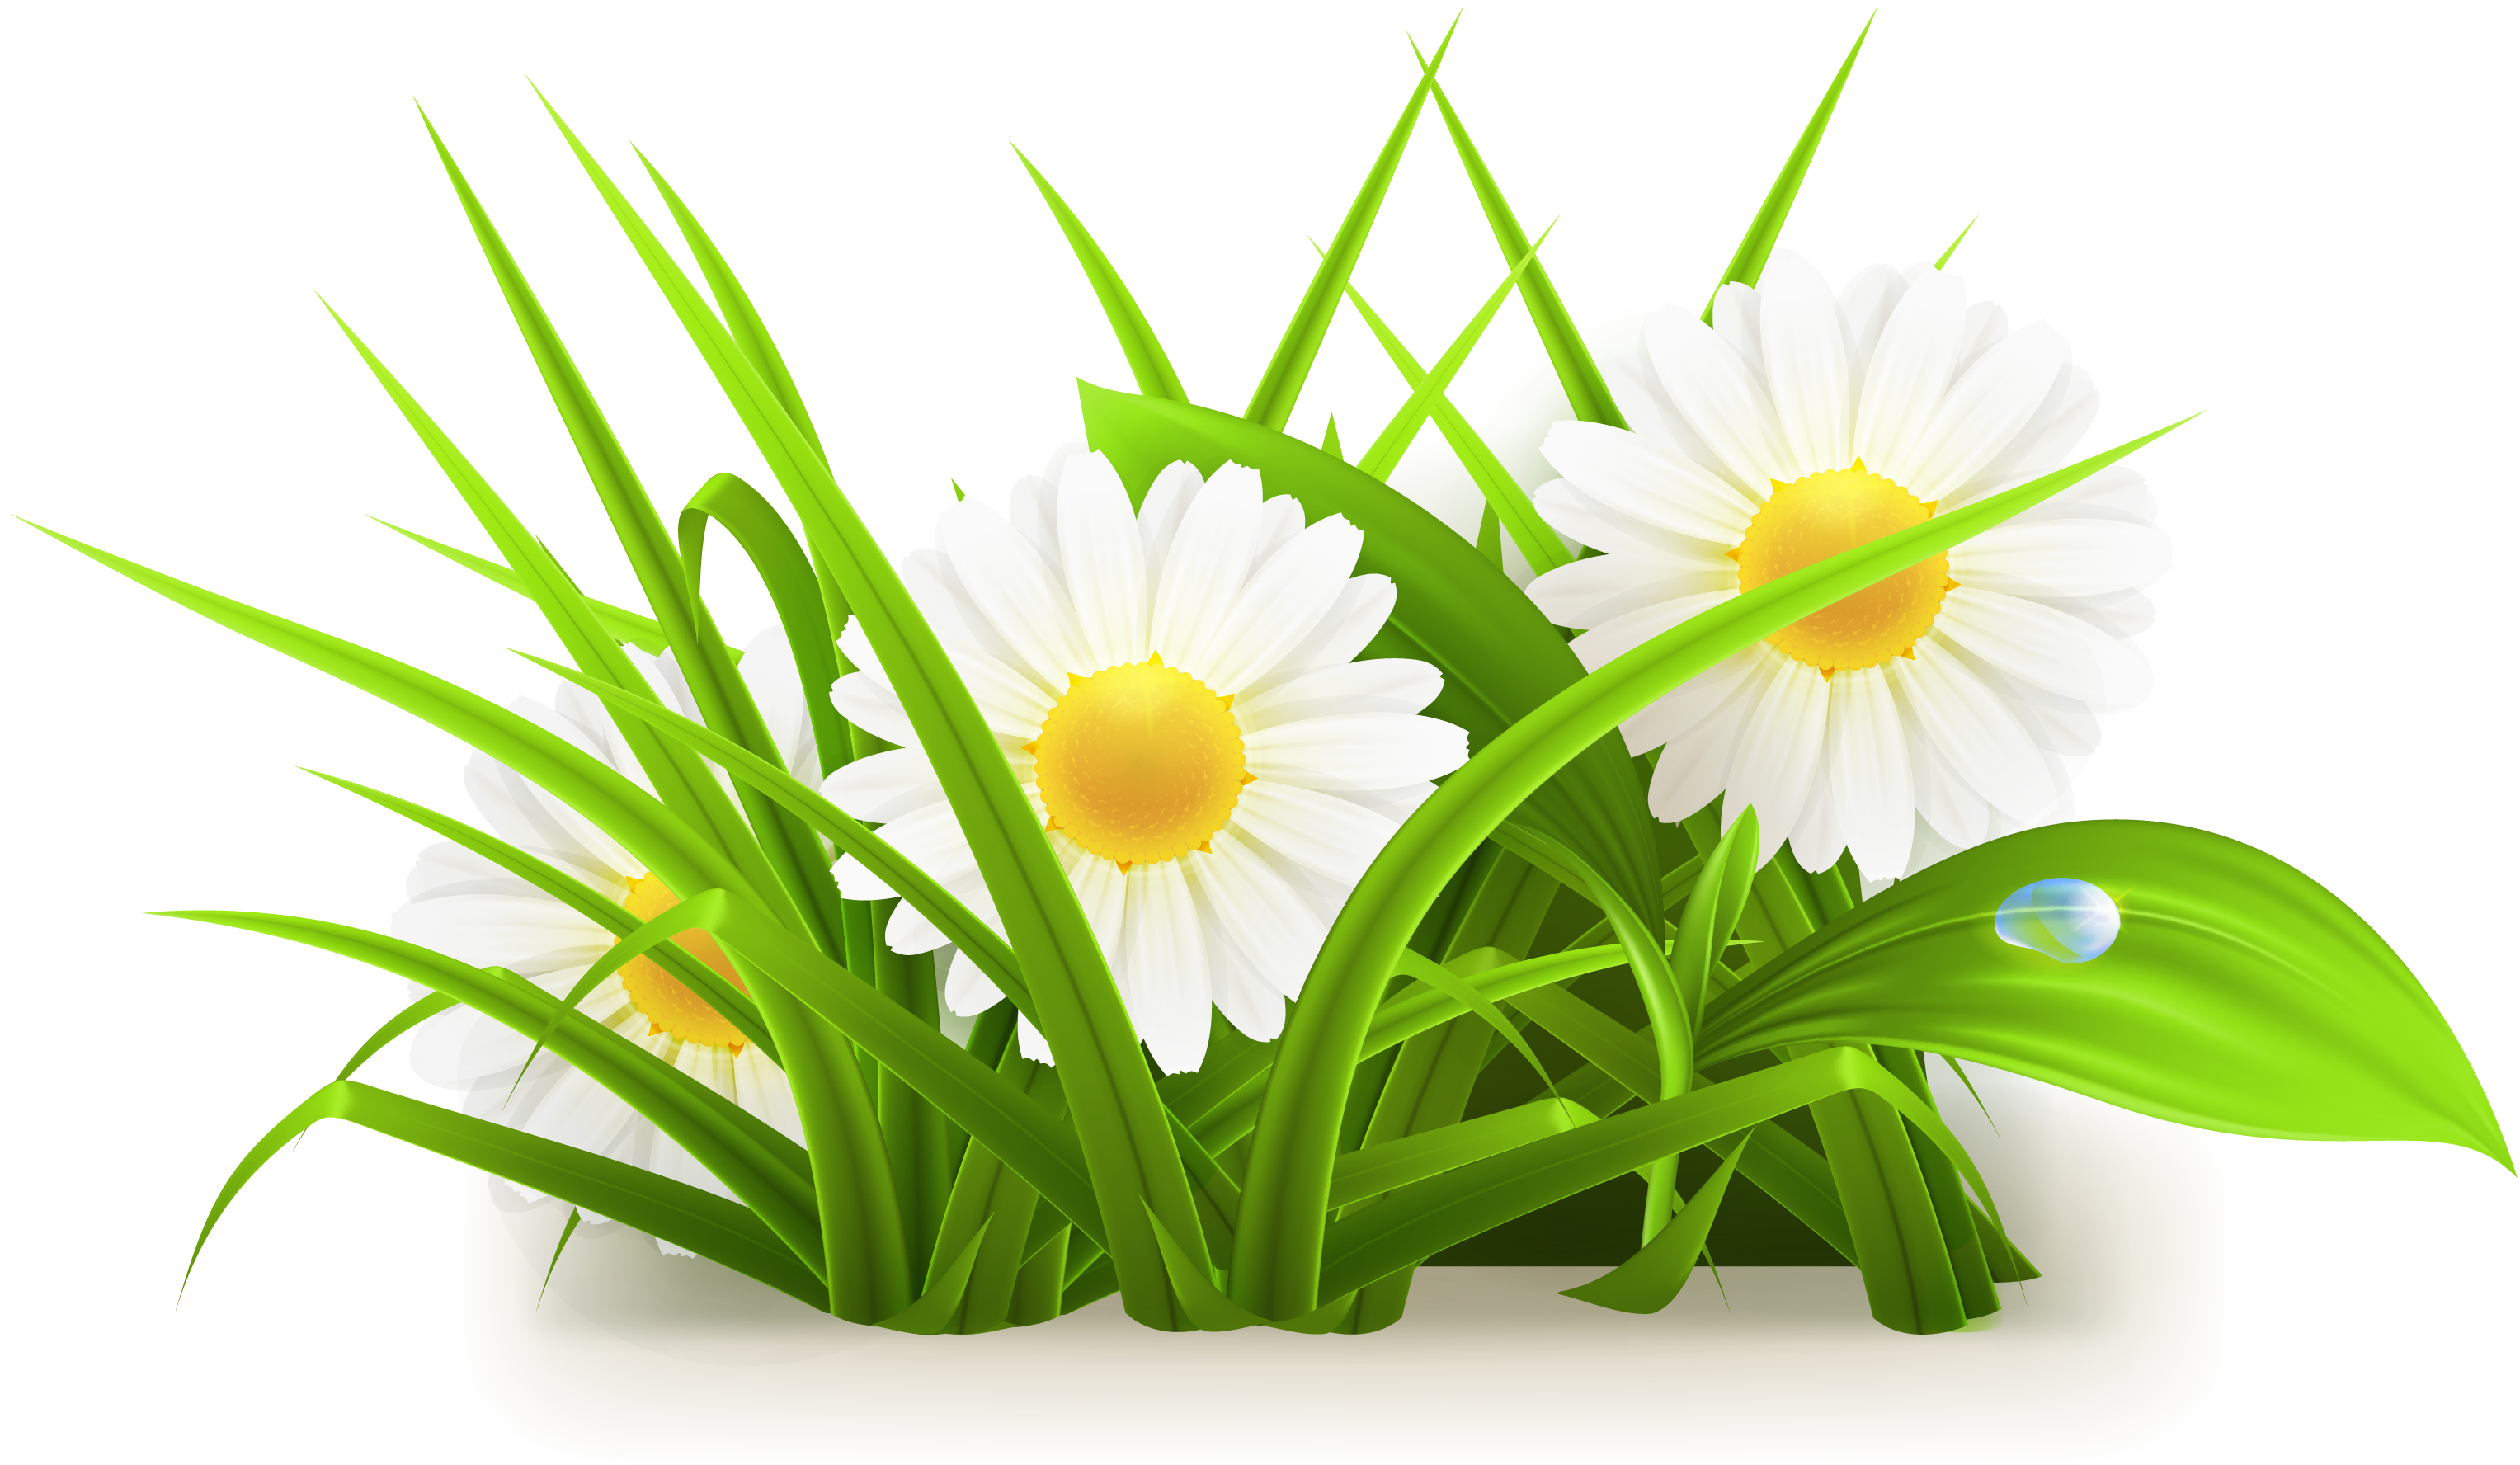 Grass vector png. Common daisy flowers transprent